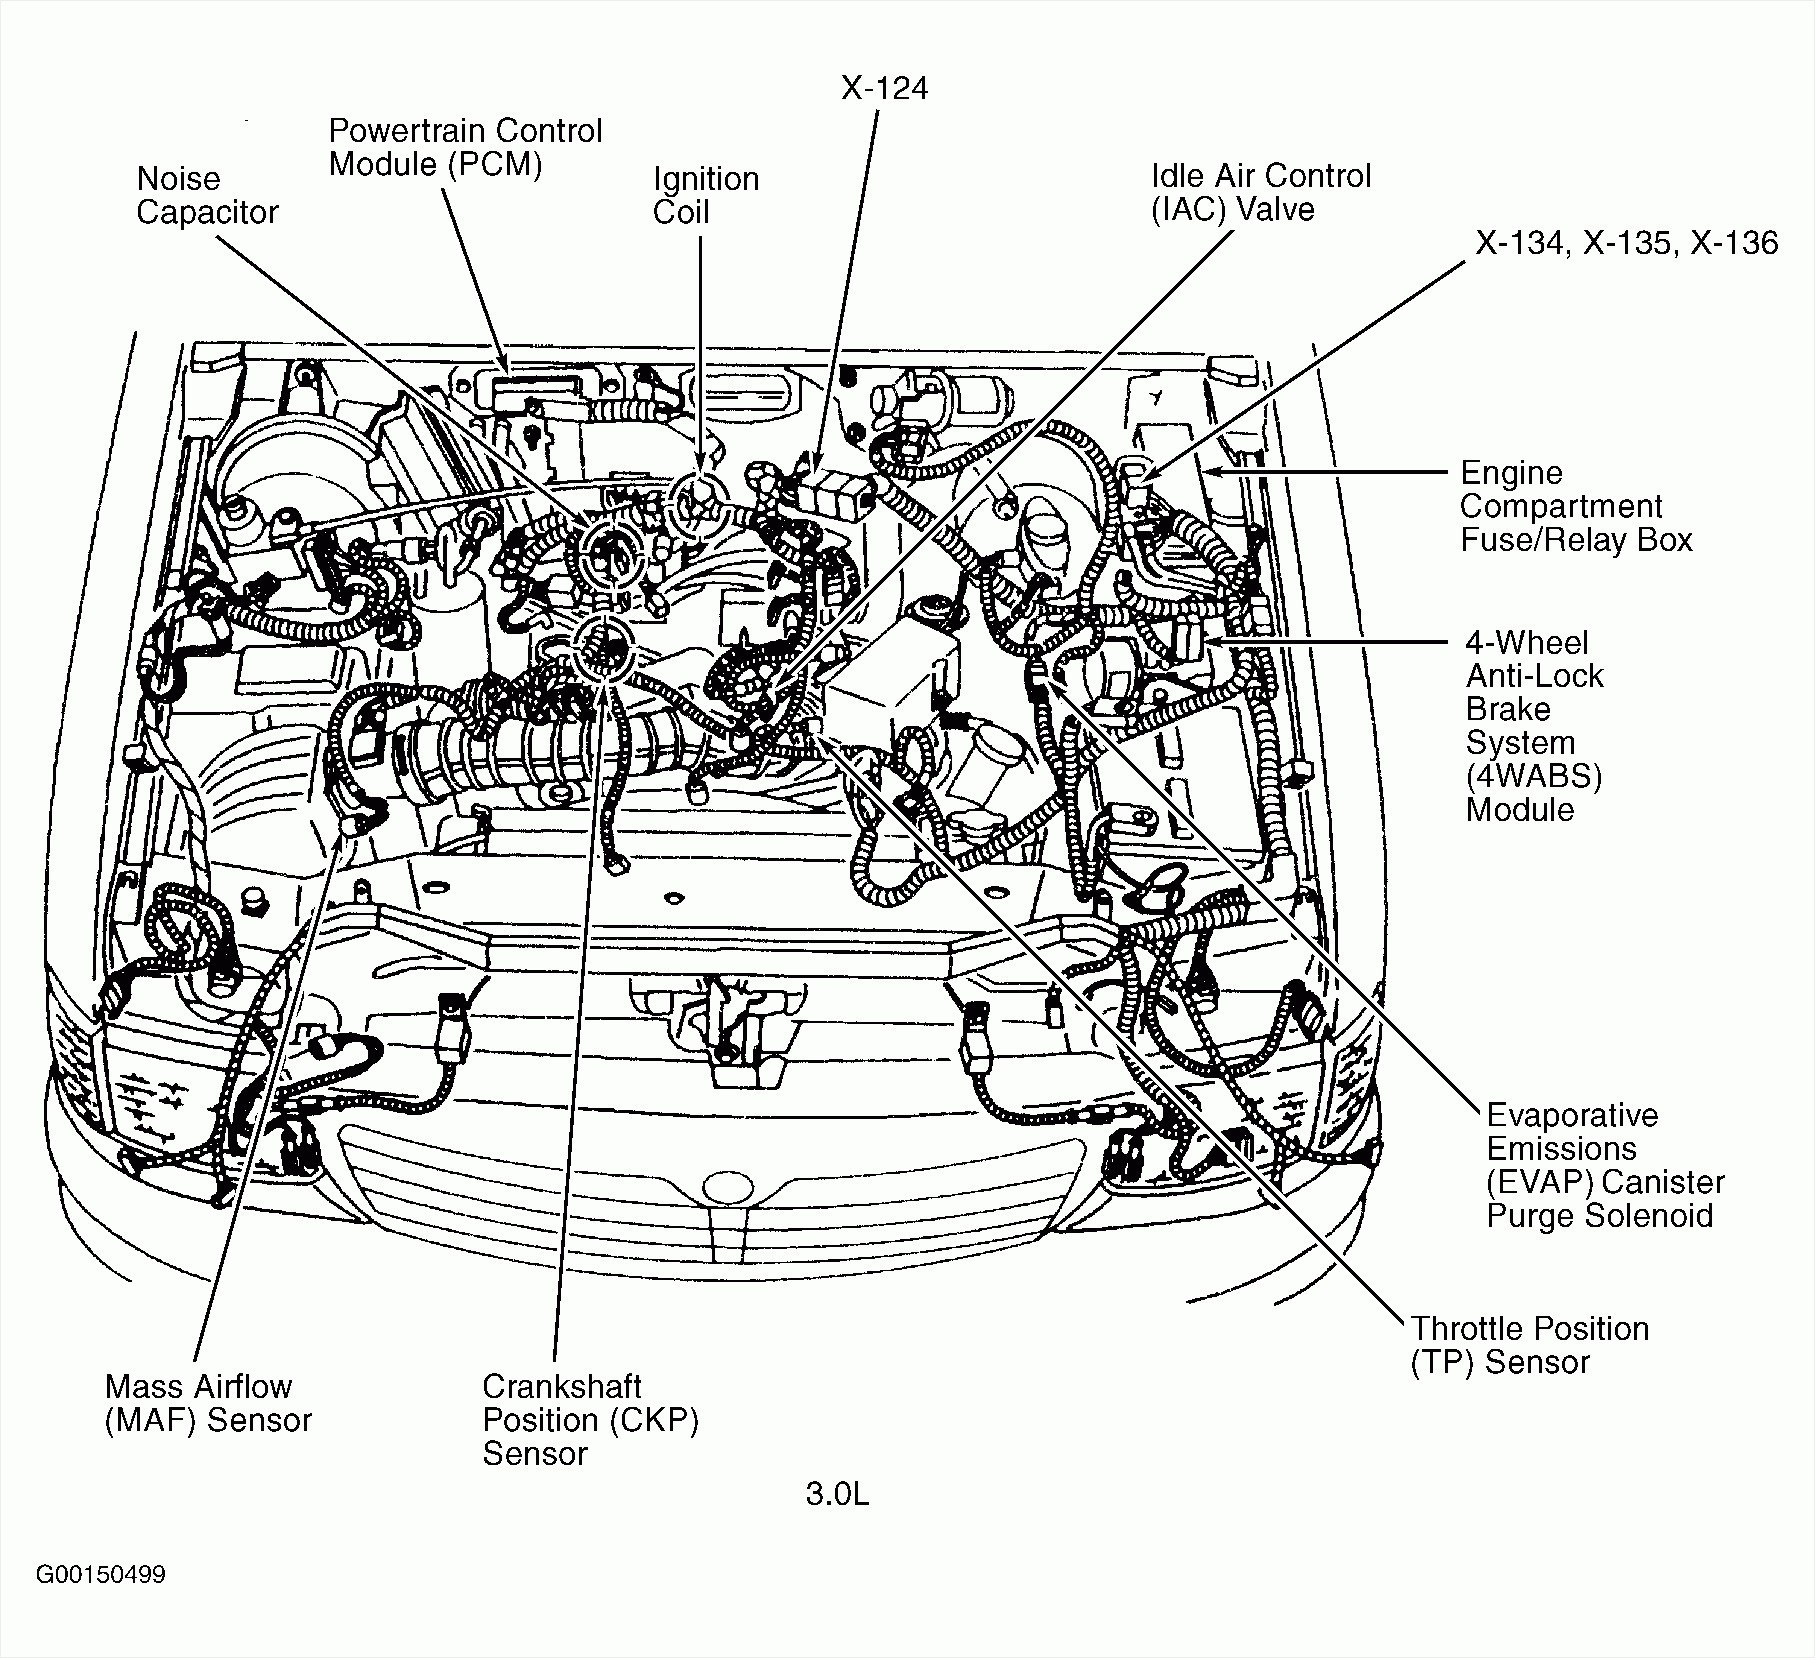 Northstar Engine Diagram north Star 4 6l Engine Diagram Wiring Diagram toolbox Of Northstar Engine Diagram Cadillac V8 Engine